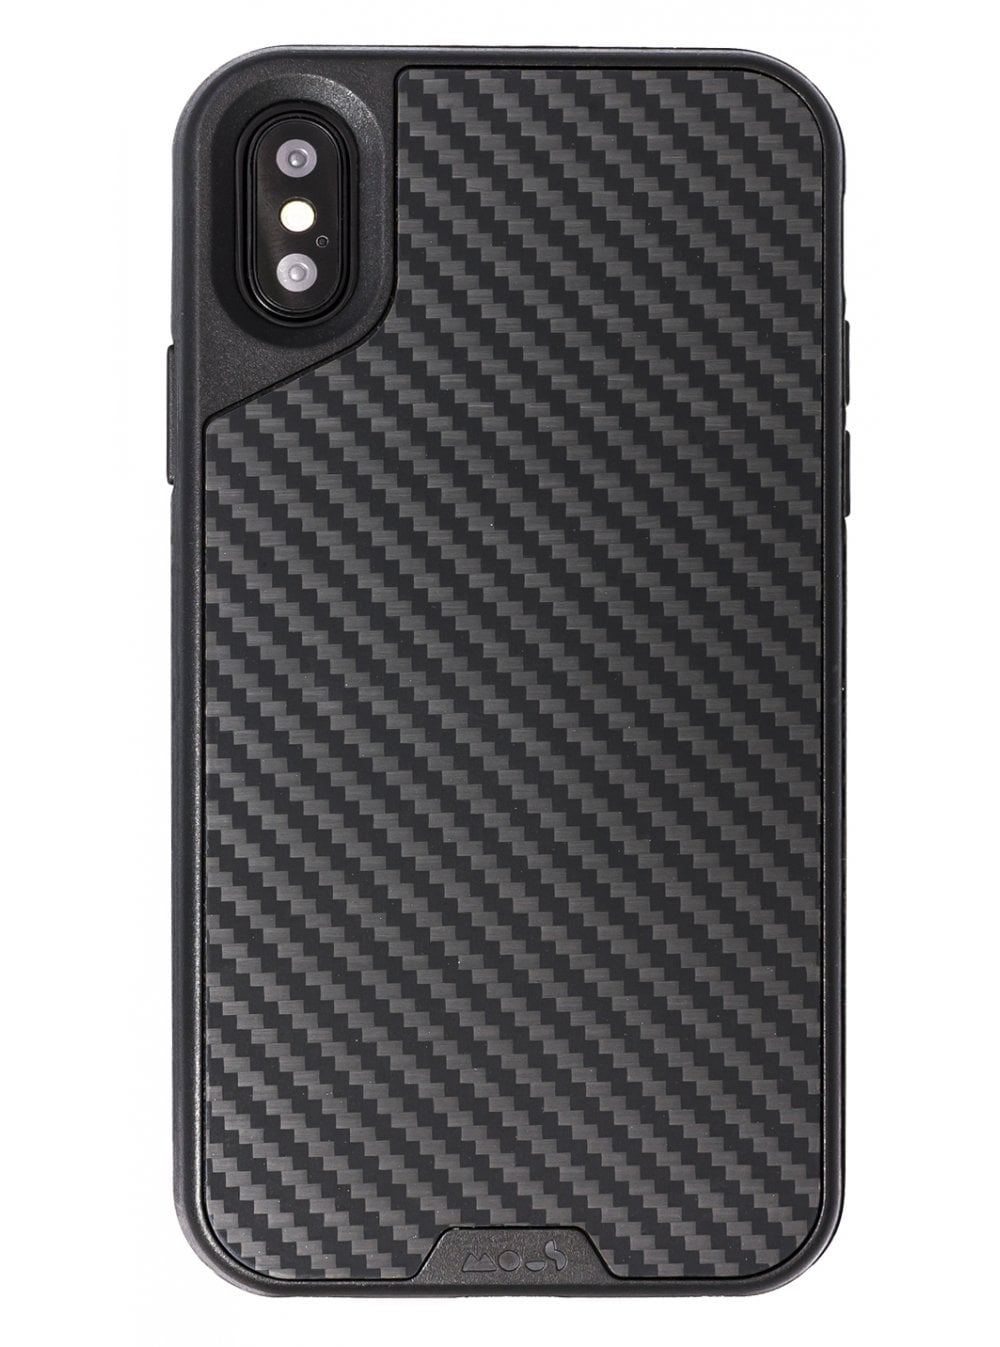 newest 1e8ce 214cc Mous iPhone X Carbon Fibre Protective Case